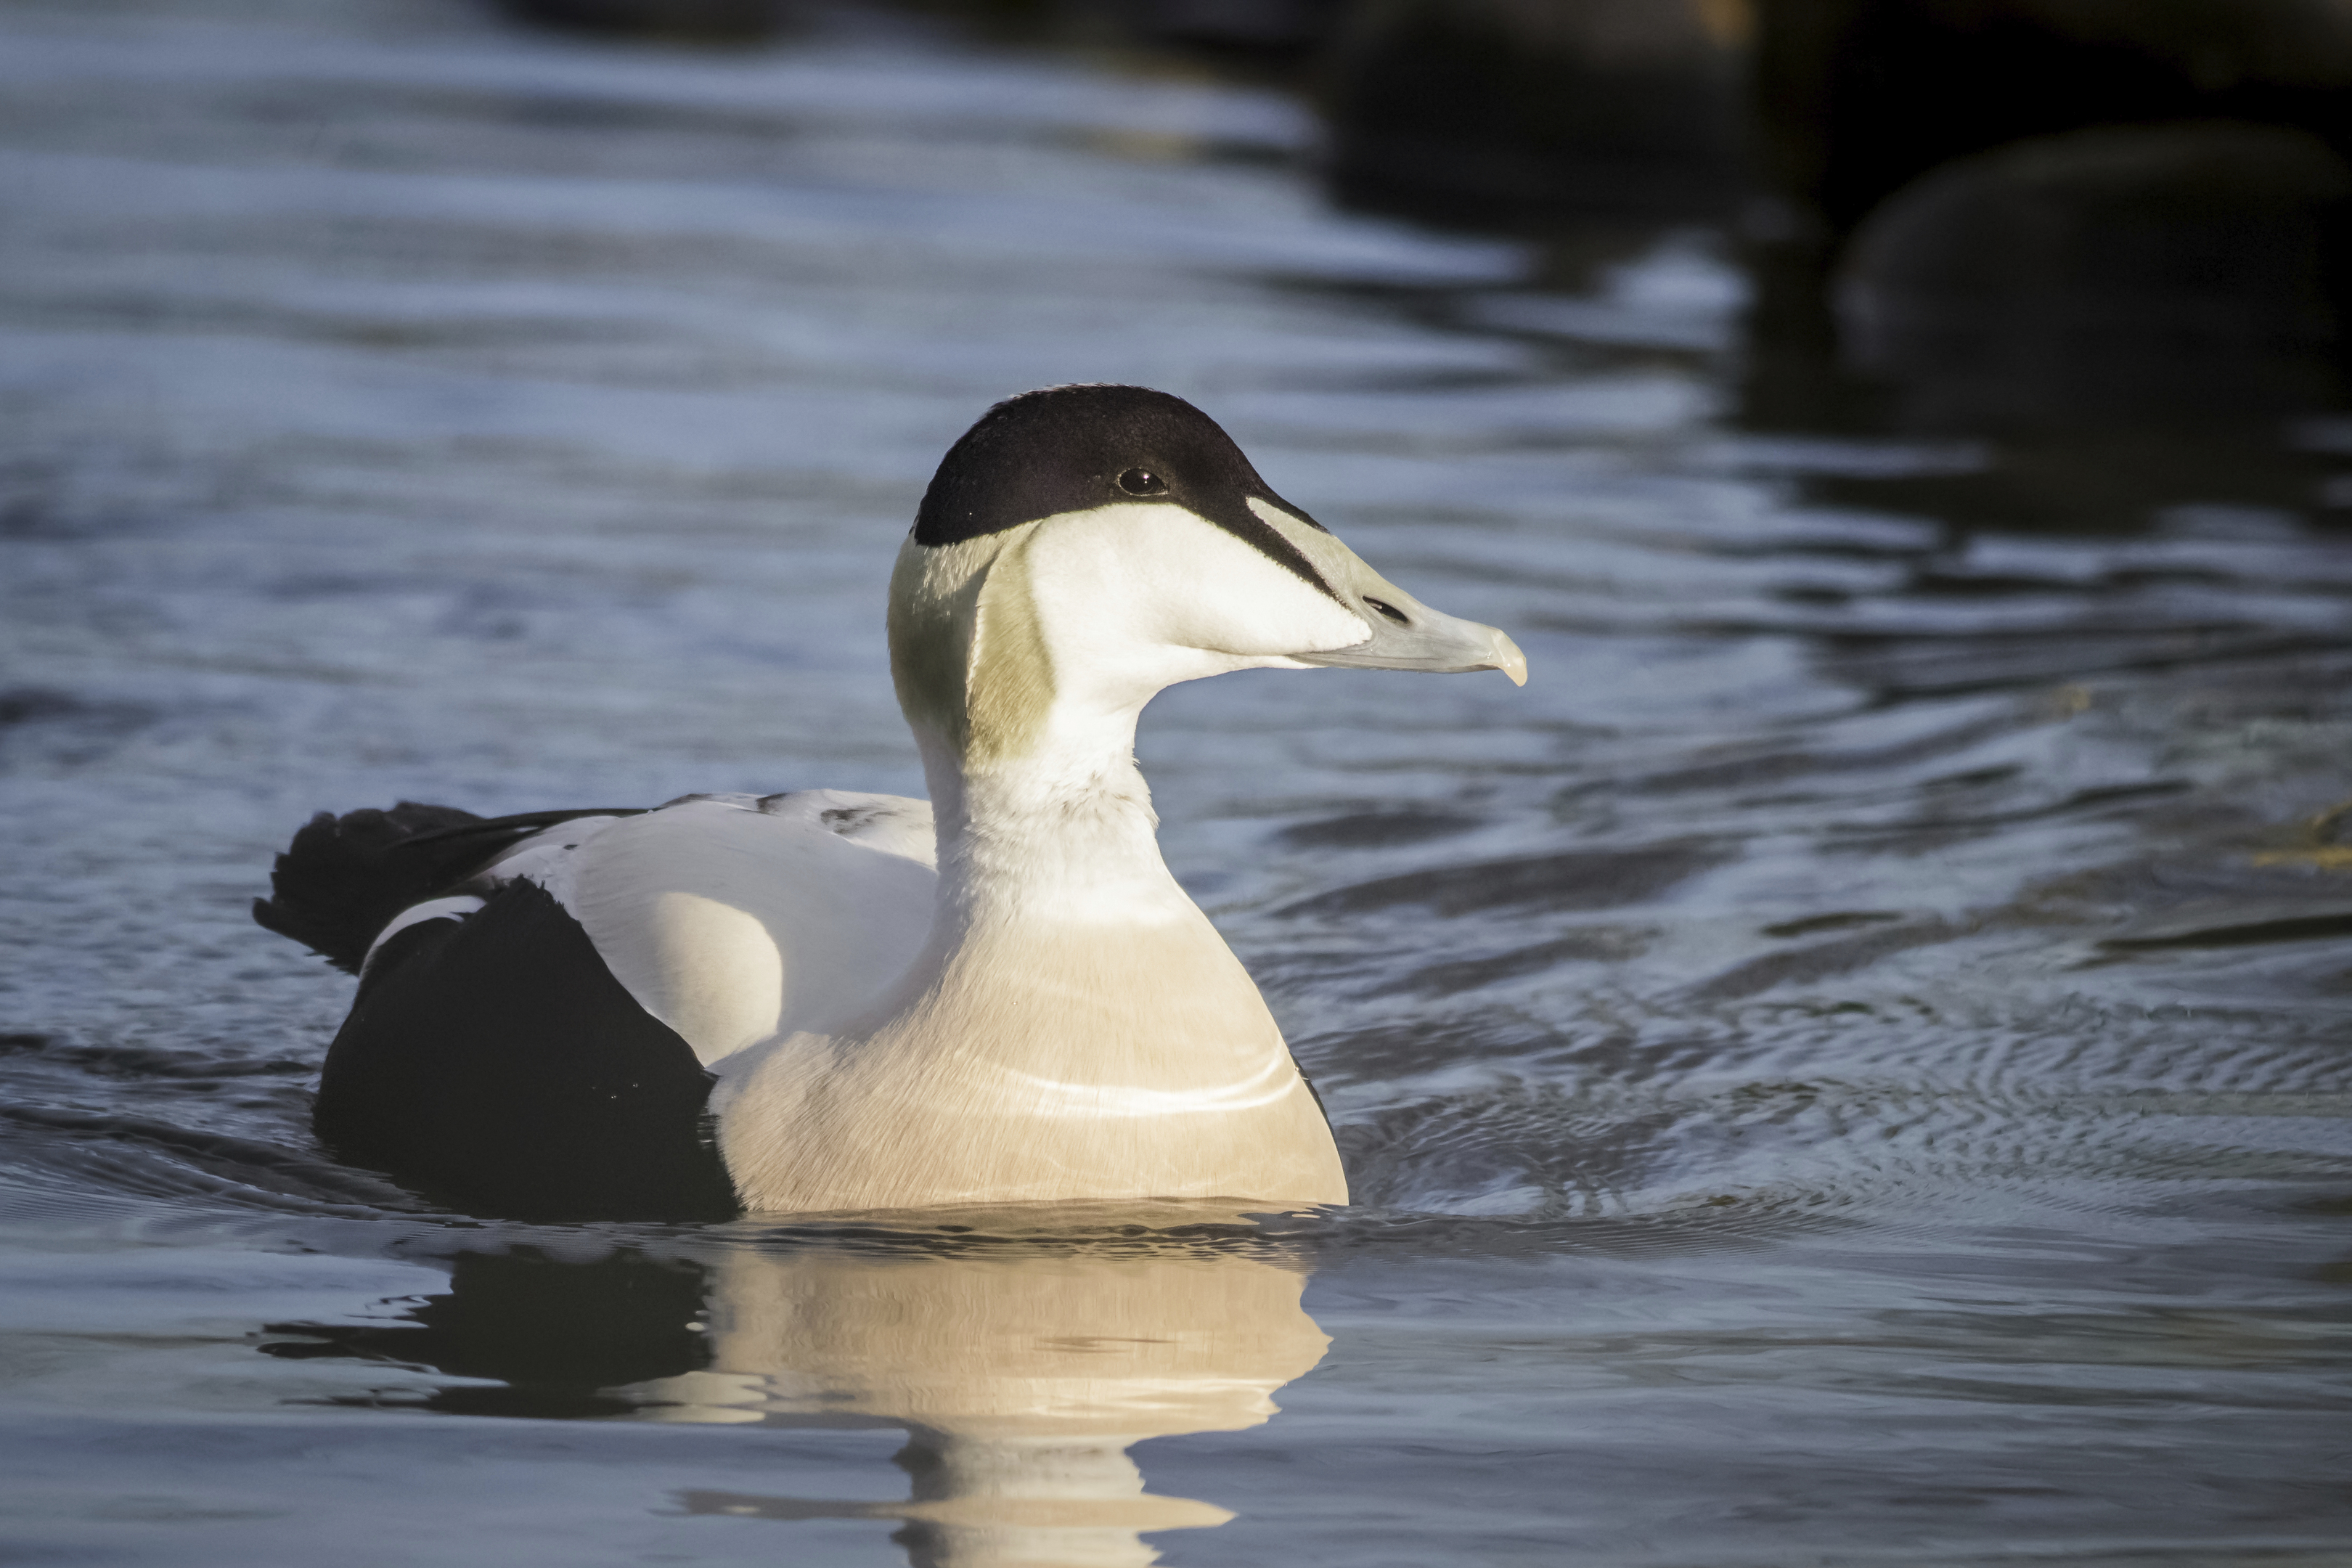 Eider ducks are active at this time of year.